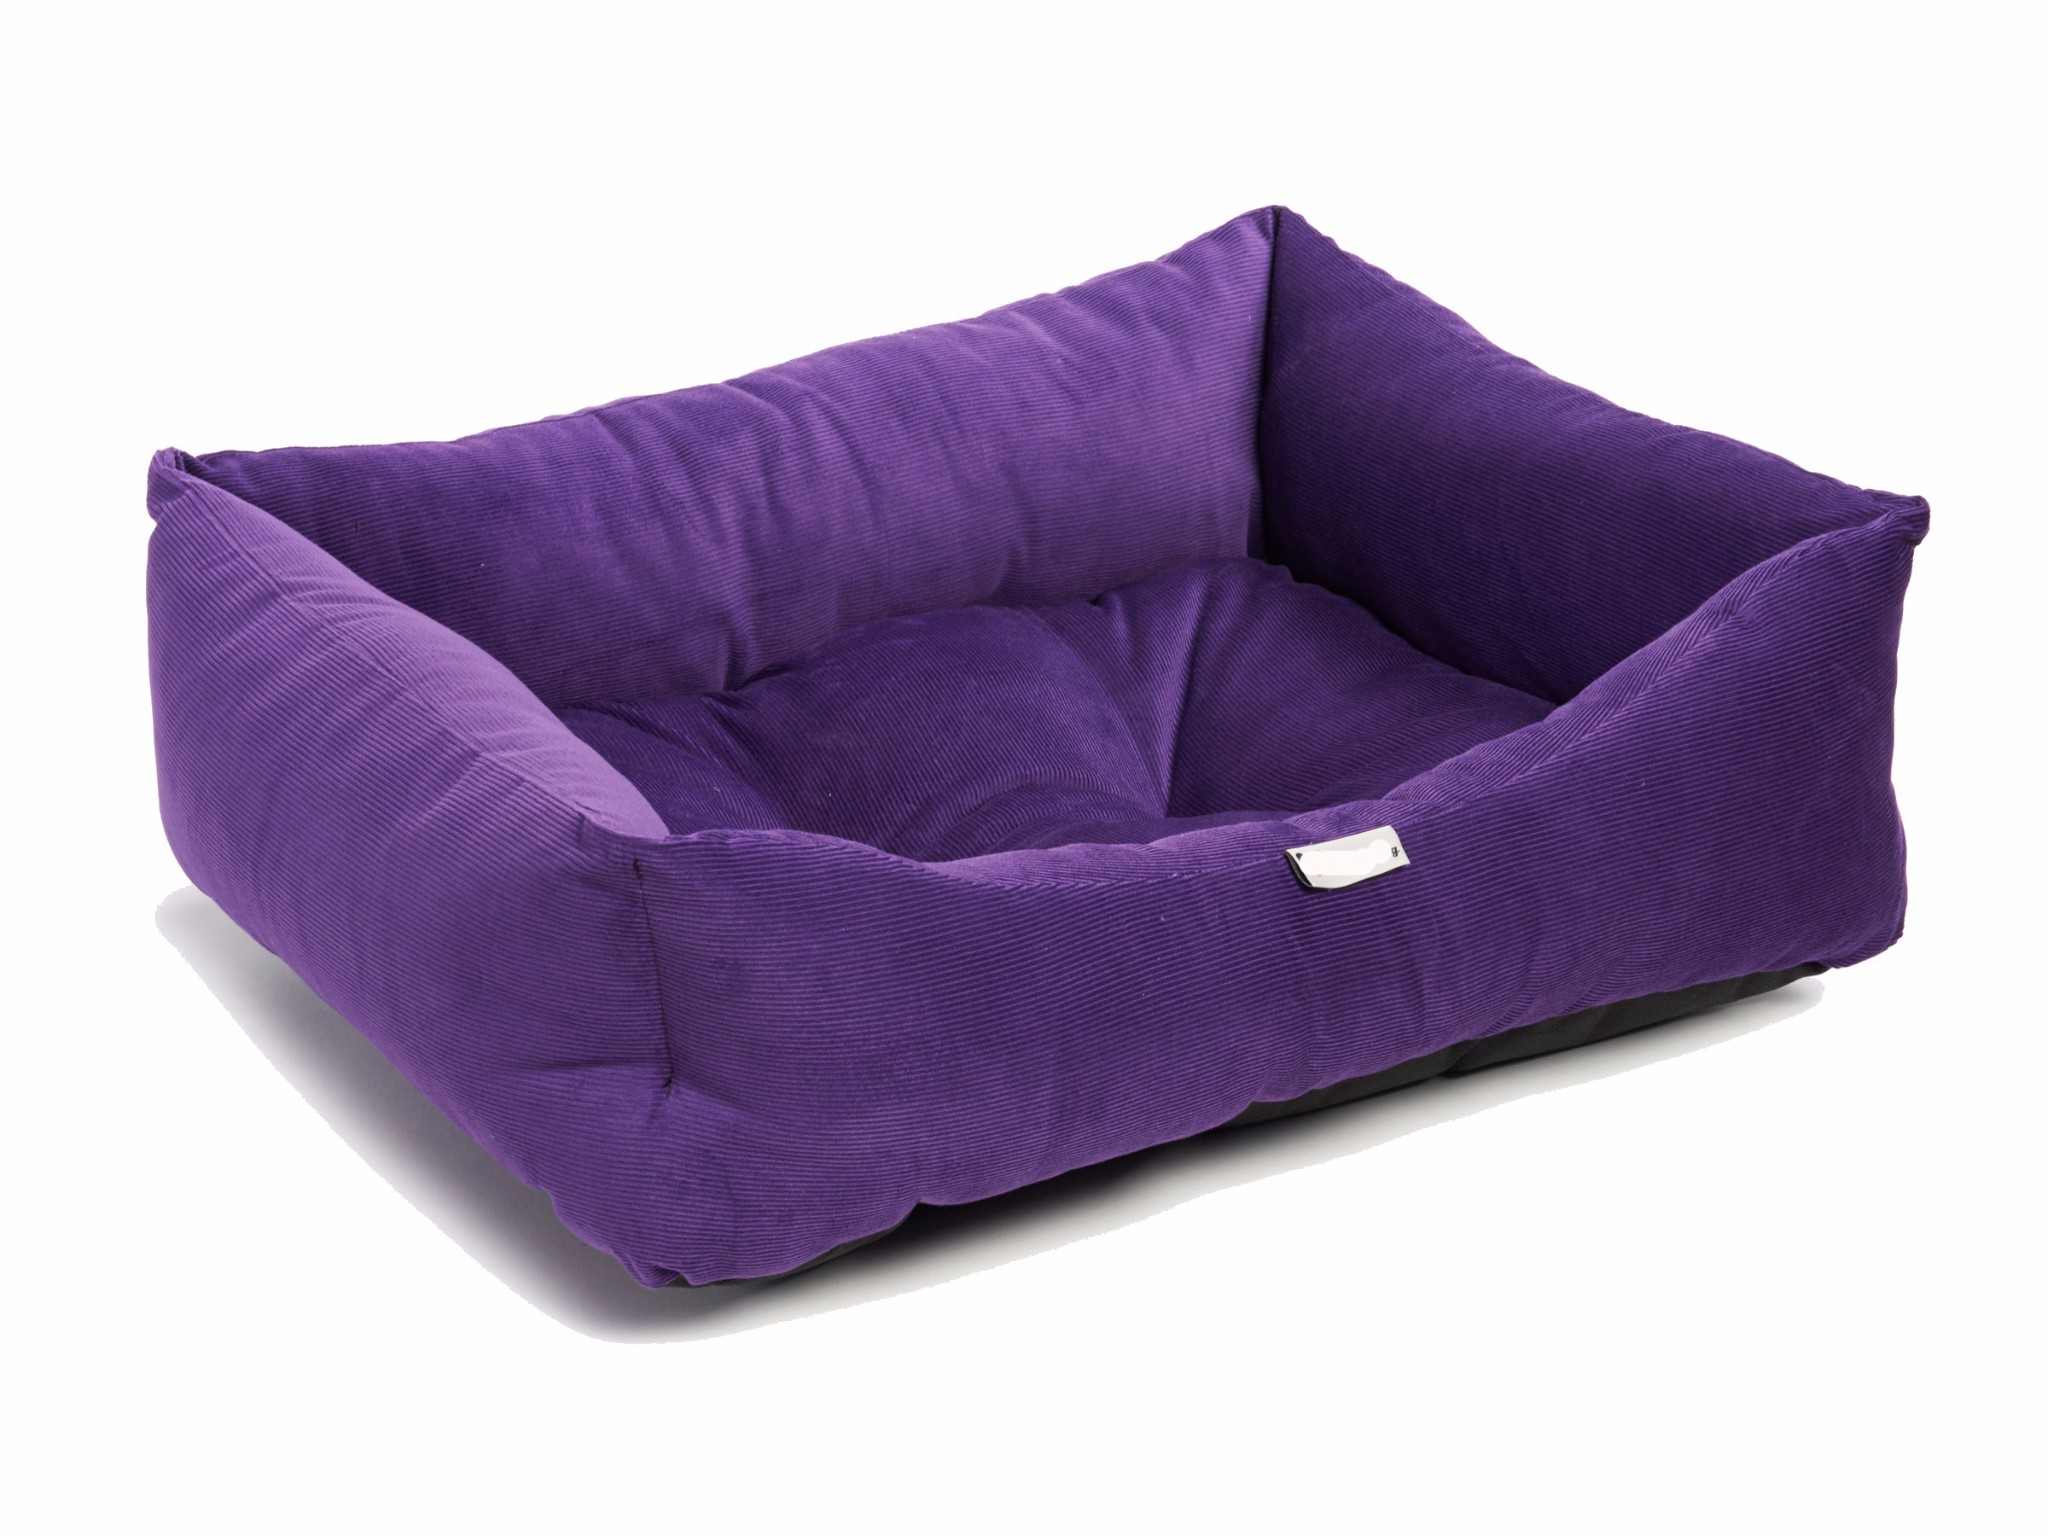 Cord Dog Bed